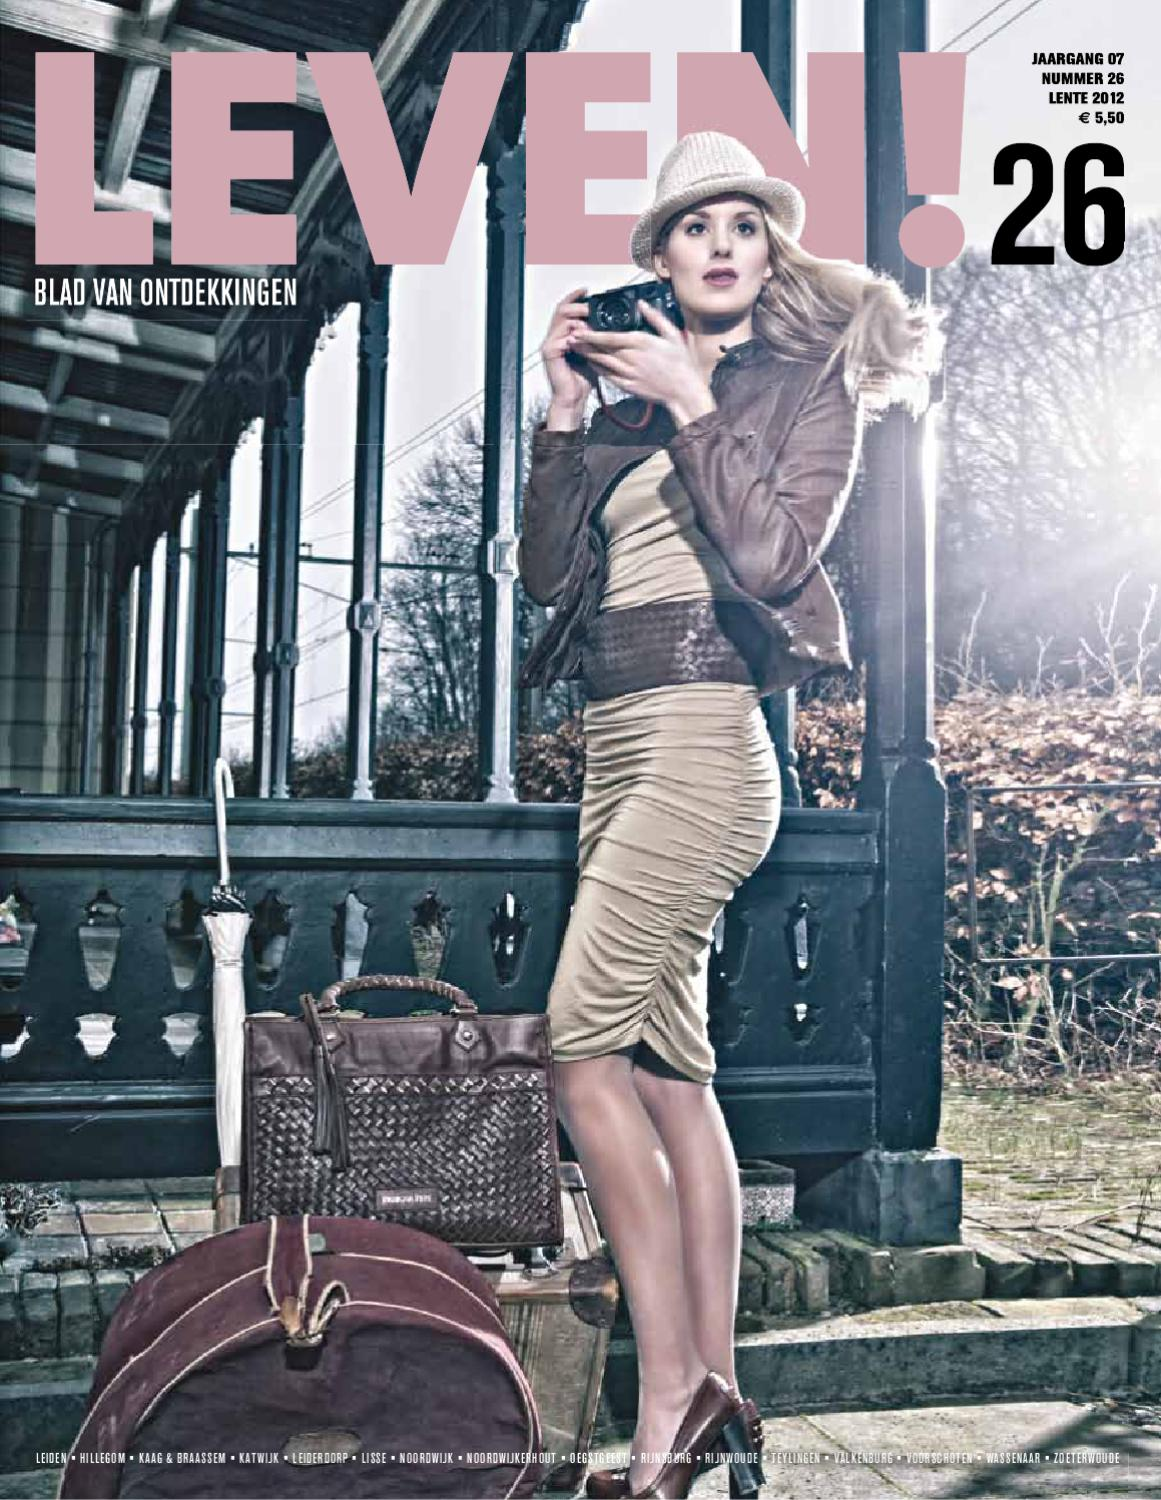 LEVEN! Magazine Leiden winter 2012 by Zabriski Media - issuu